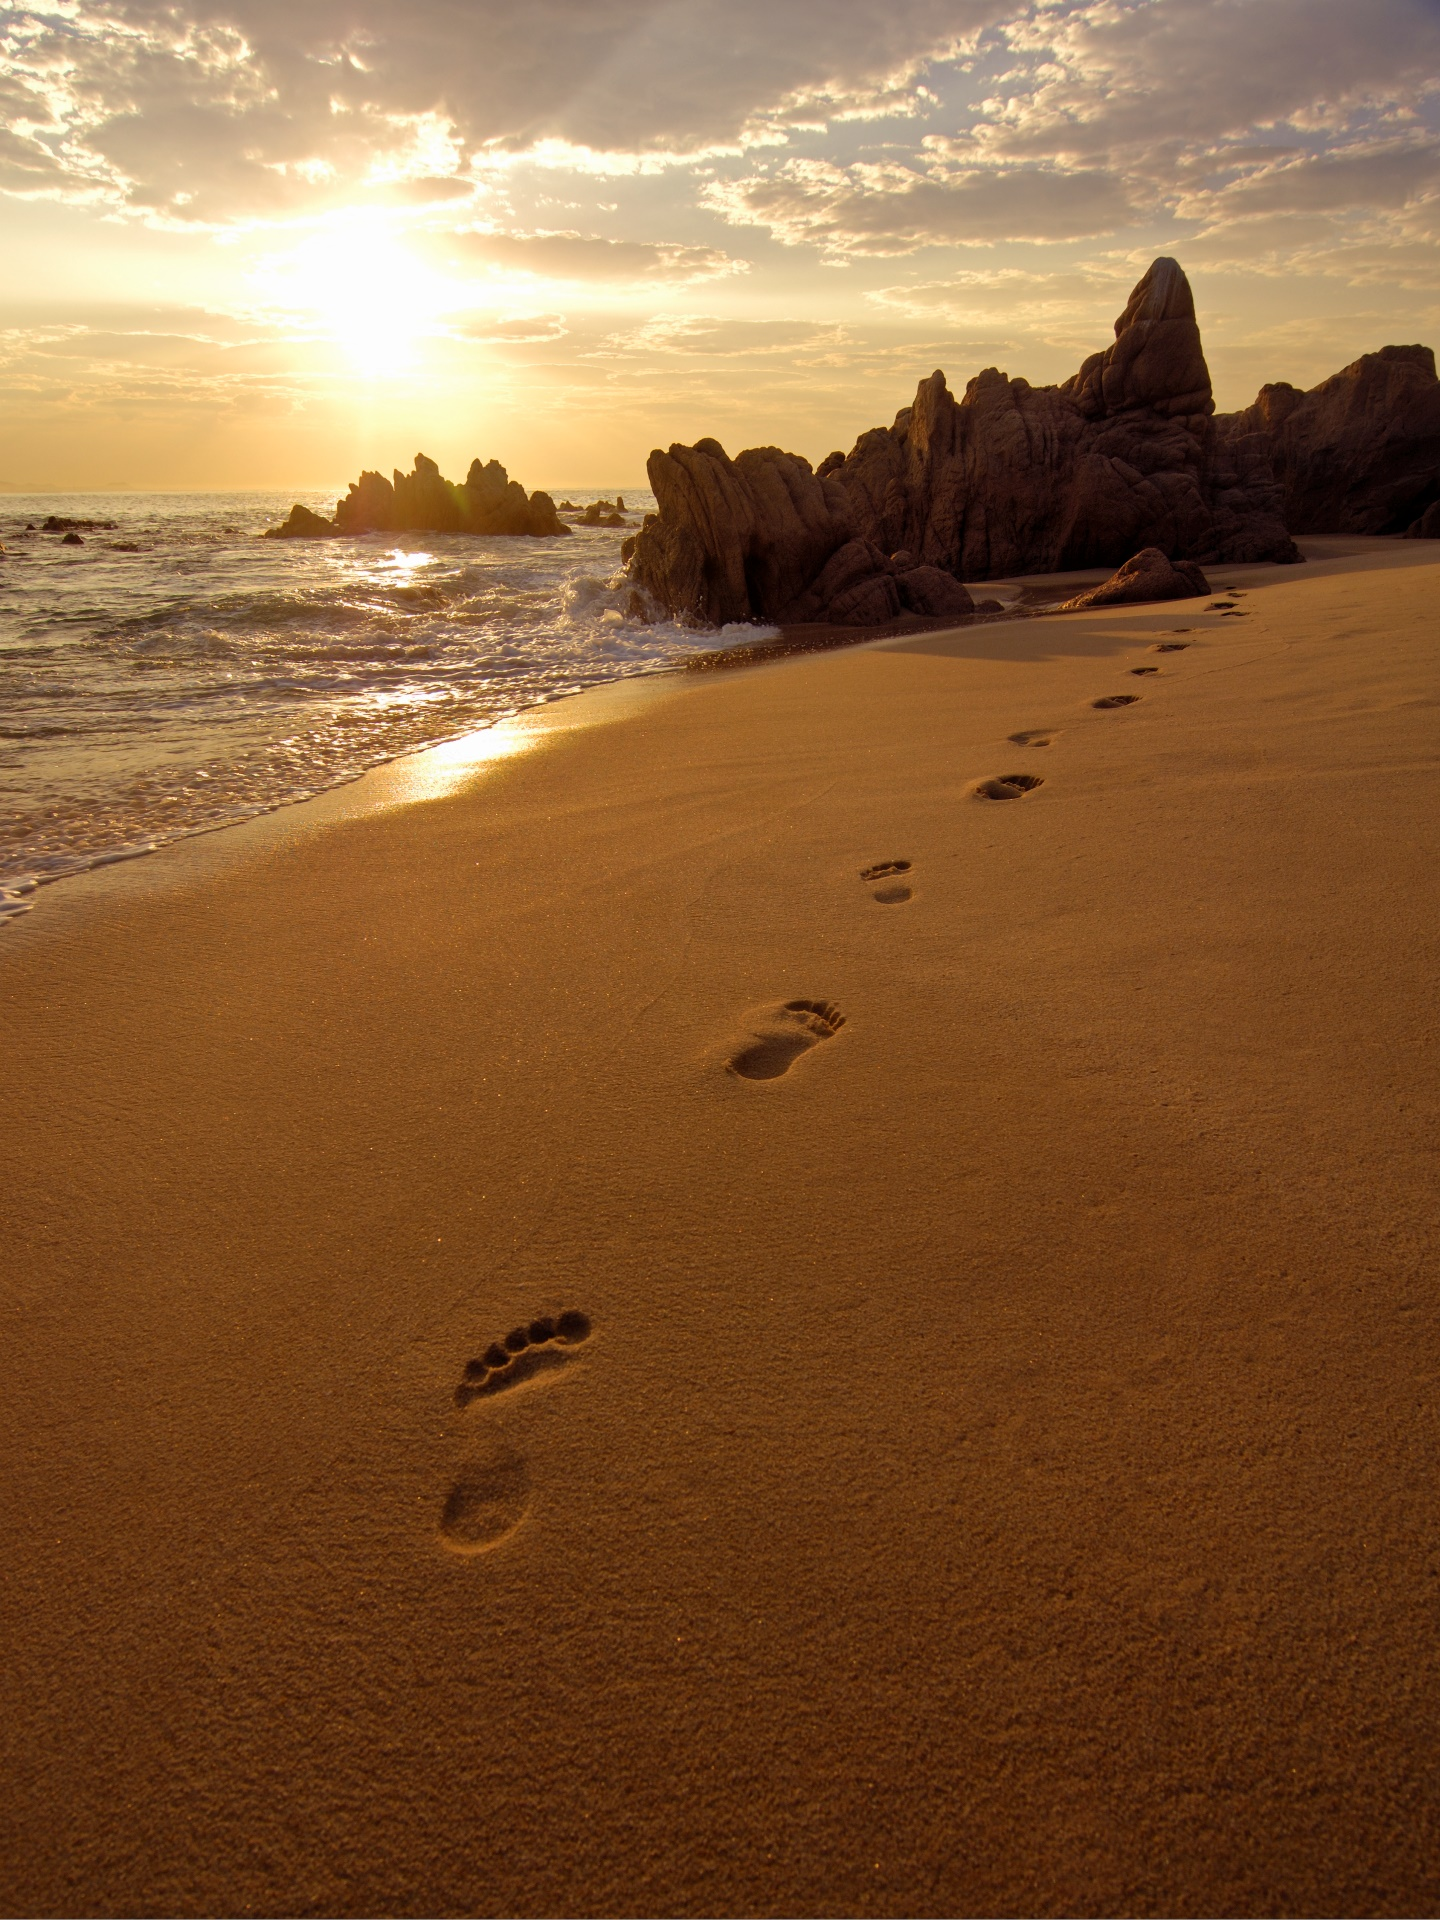 Quotes About Leaving Footprints. QuotesGram